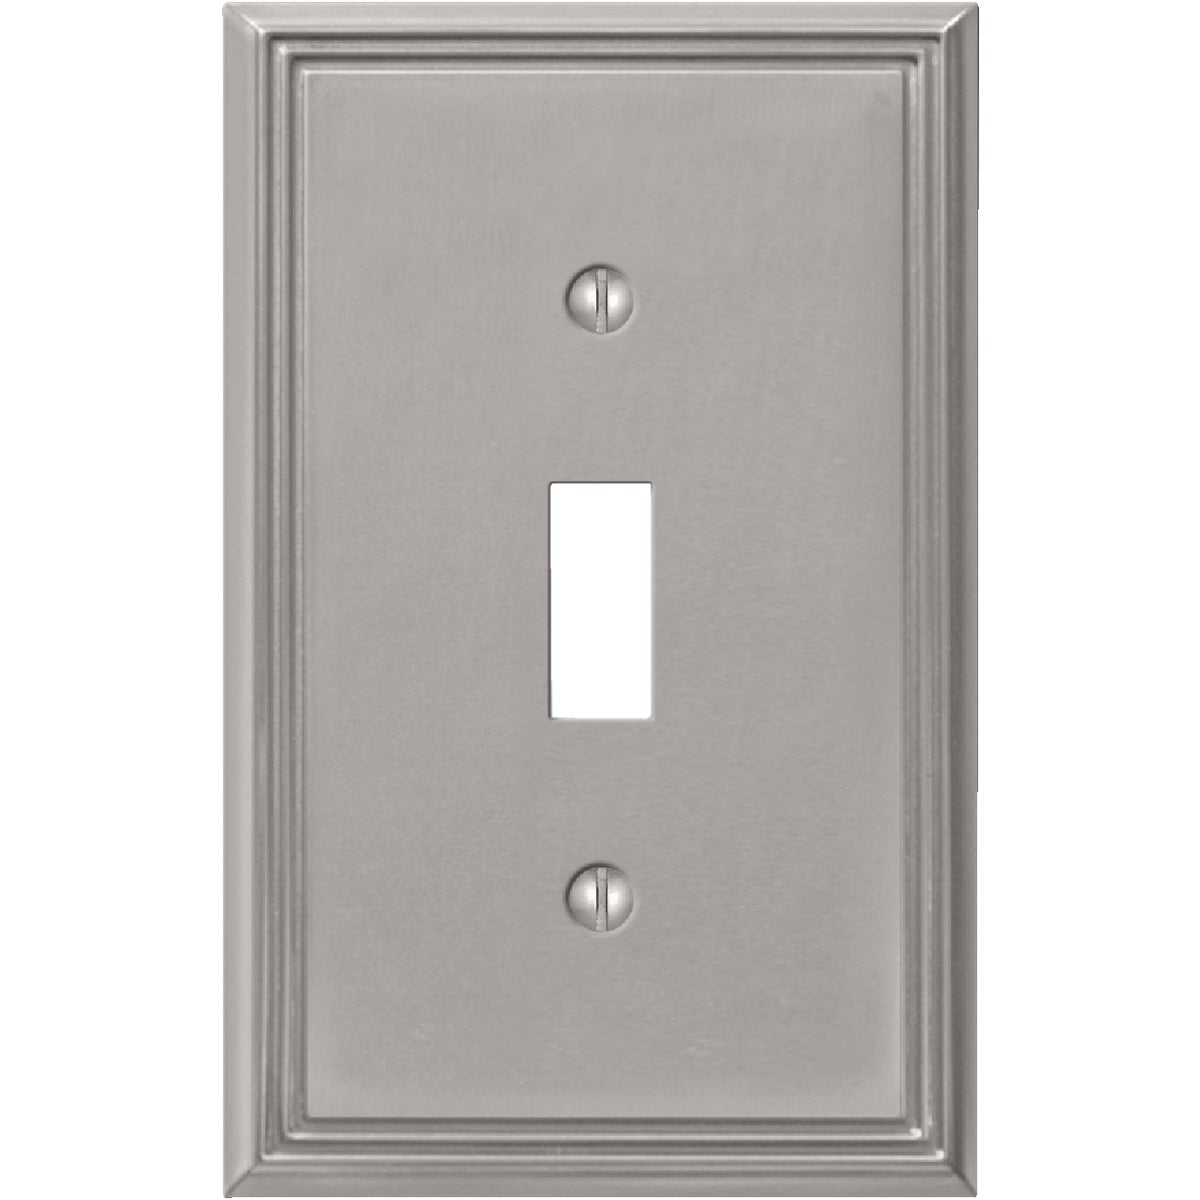 BN 1-TOGGLE WALLPLATE - 3101BN by Jackson Deerfield Mf